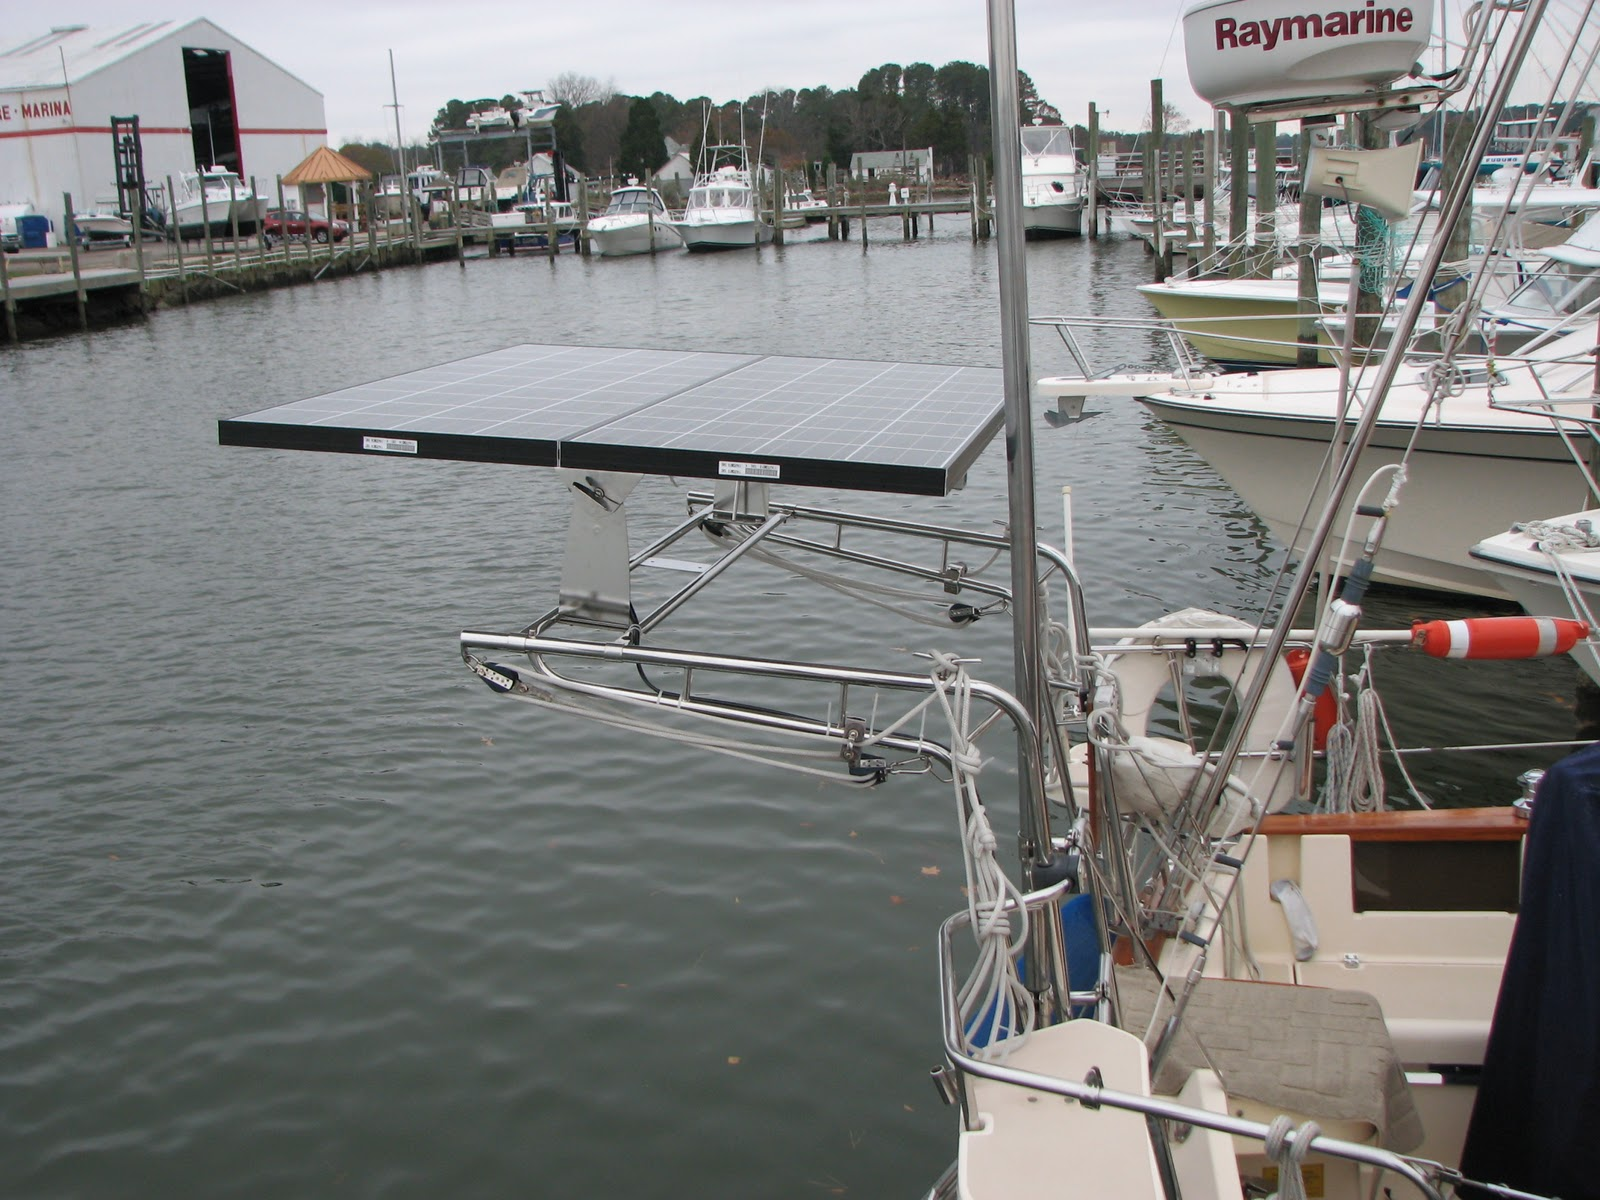 Marine solar panel installations first mate marine inc - Mission Accomplished At Least For The External Mounting Now I Need To Finish Up The Below Decks Wiring The Bluesky Regulator Is Mounted In The Starboard